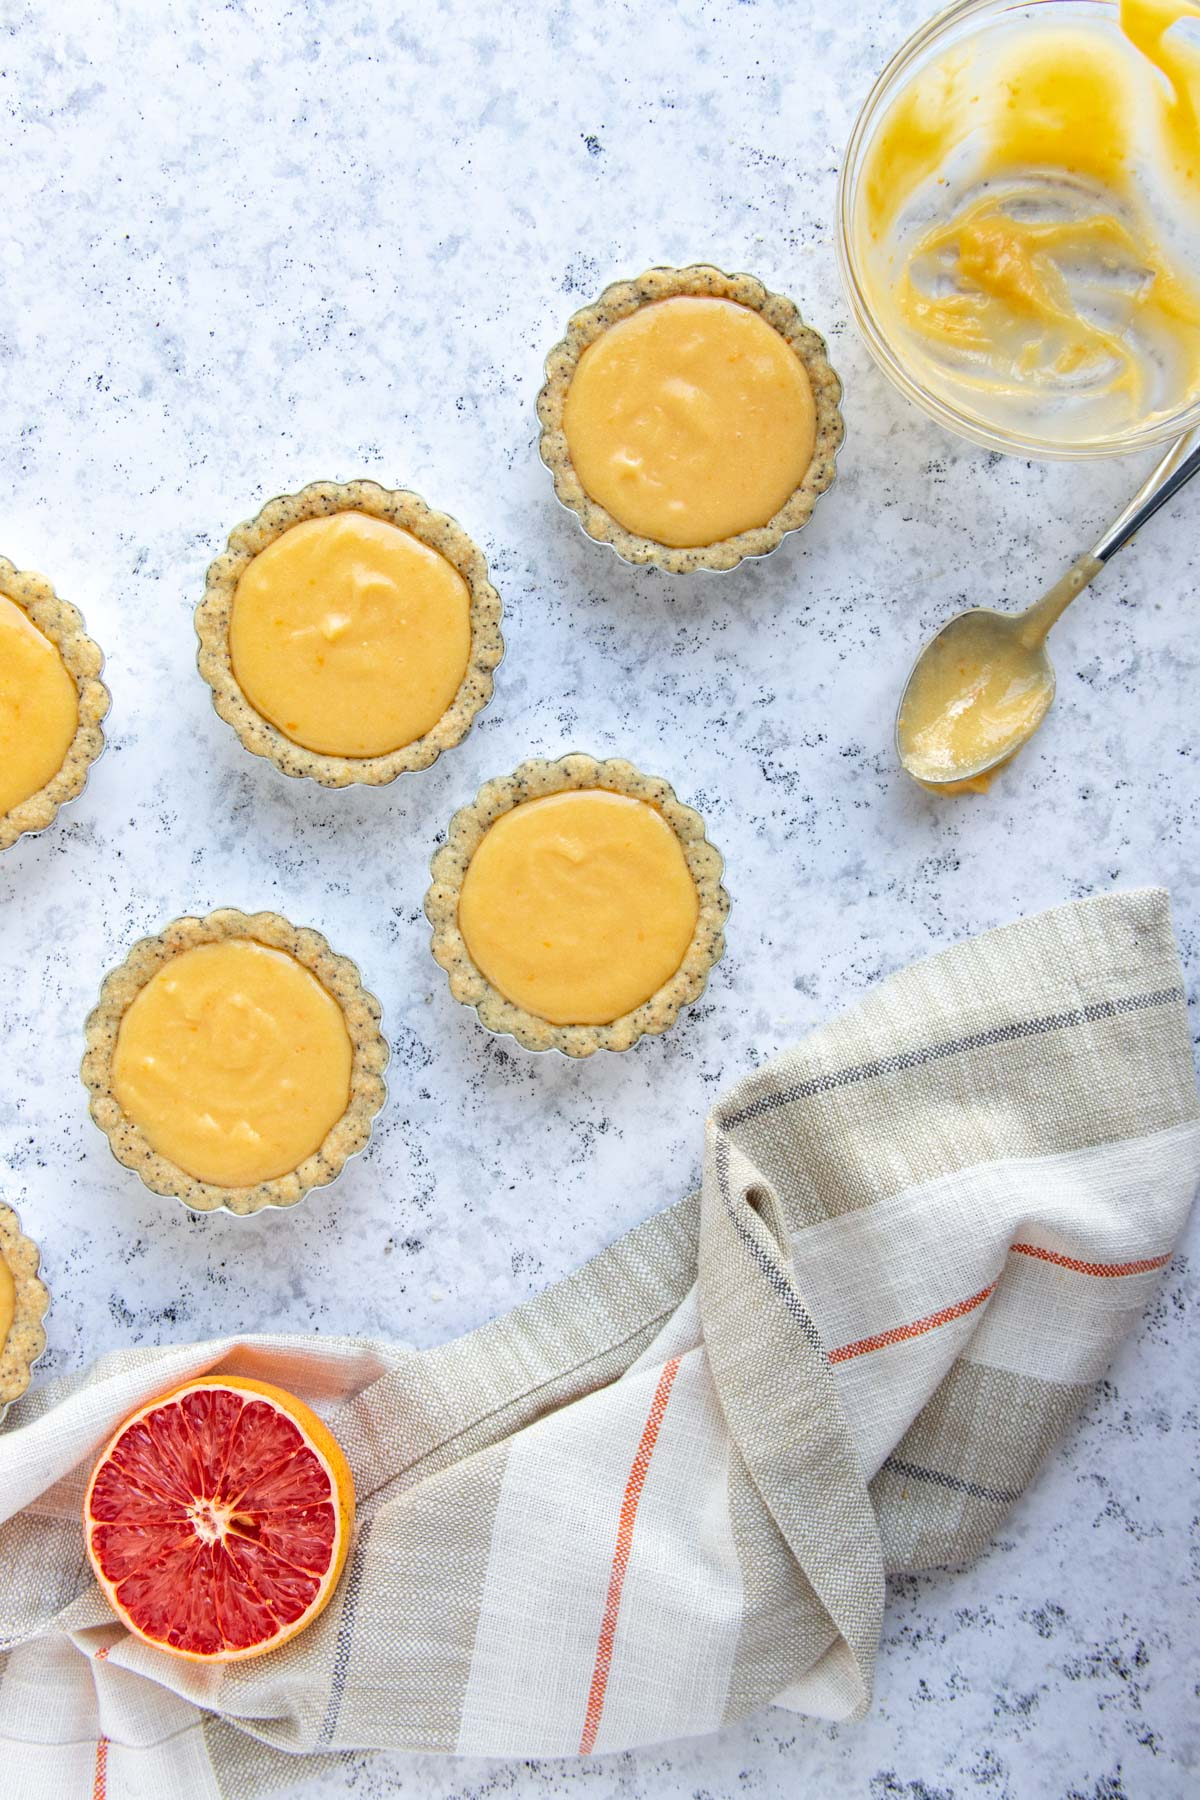 Baked lemon poppy seed tart crusts filled with grapefruit curd